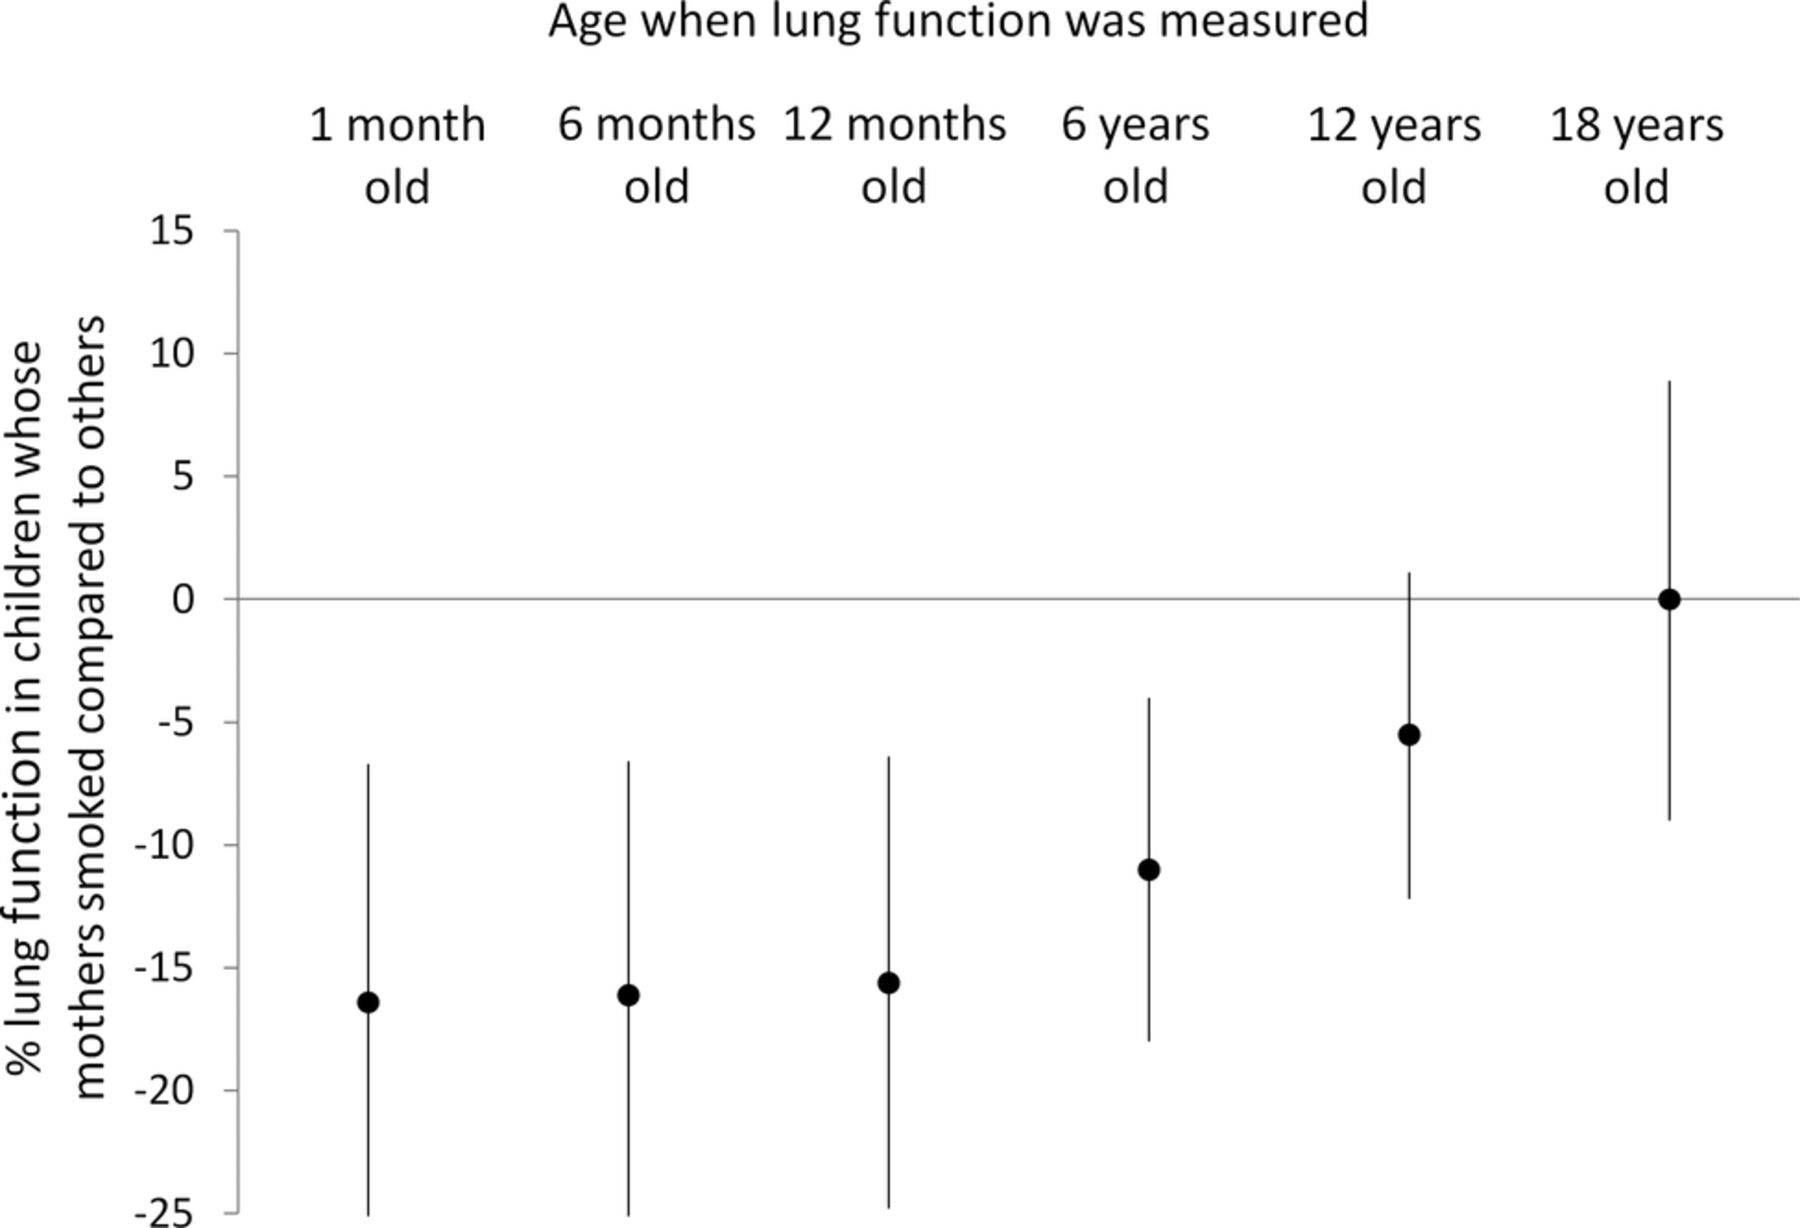 A Longitudinal Study Of Lung Function From 1 Month To 18 Years Of